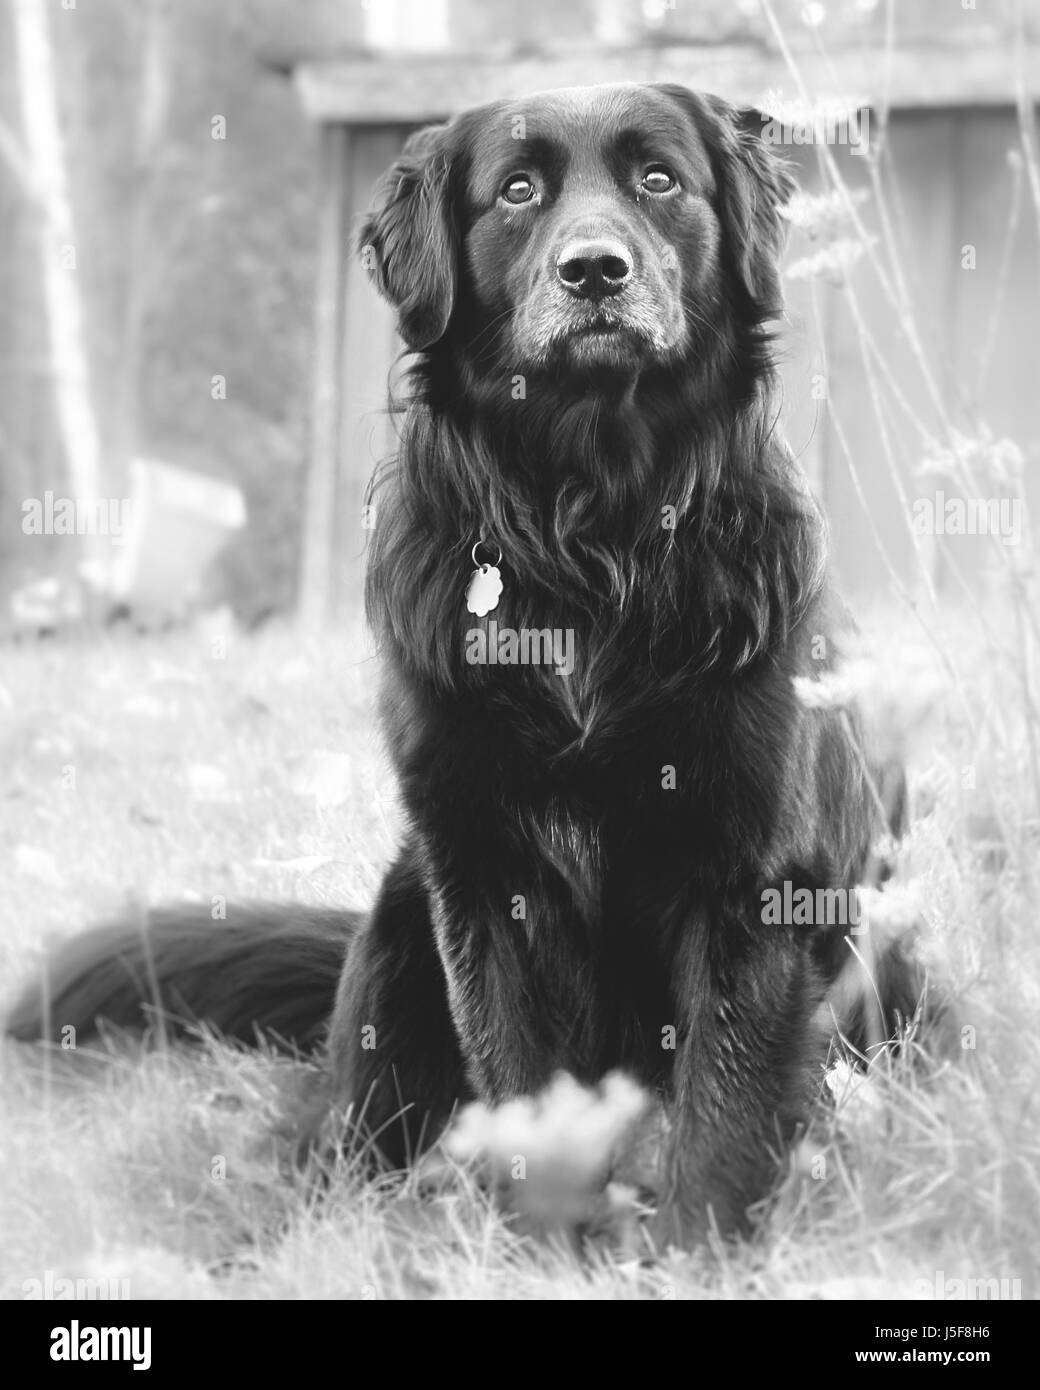 Black dog with serious look on his face waits looking lost and forlorn in Upstate New York. - Stock Image